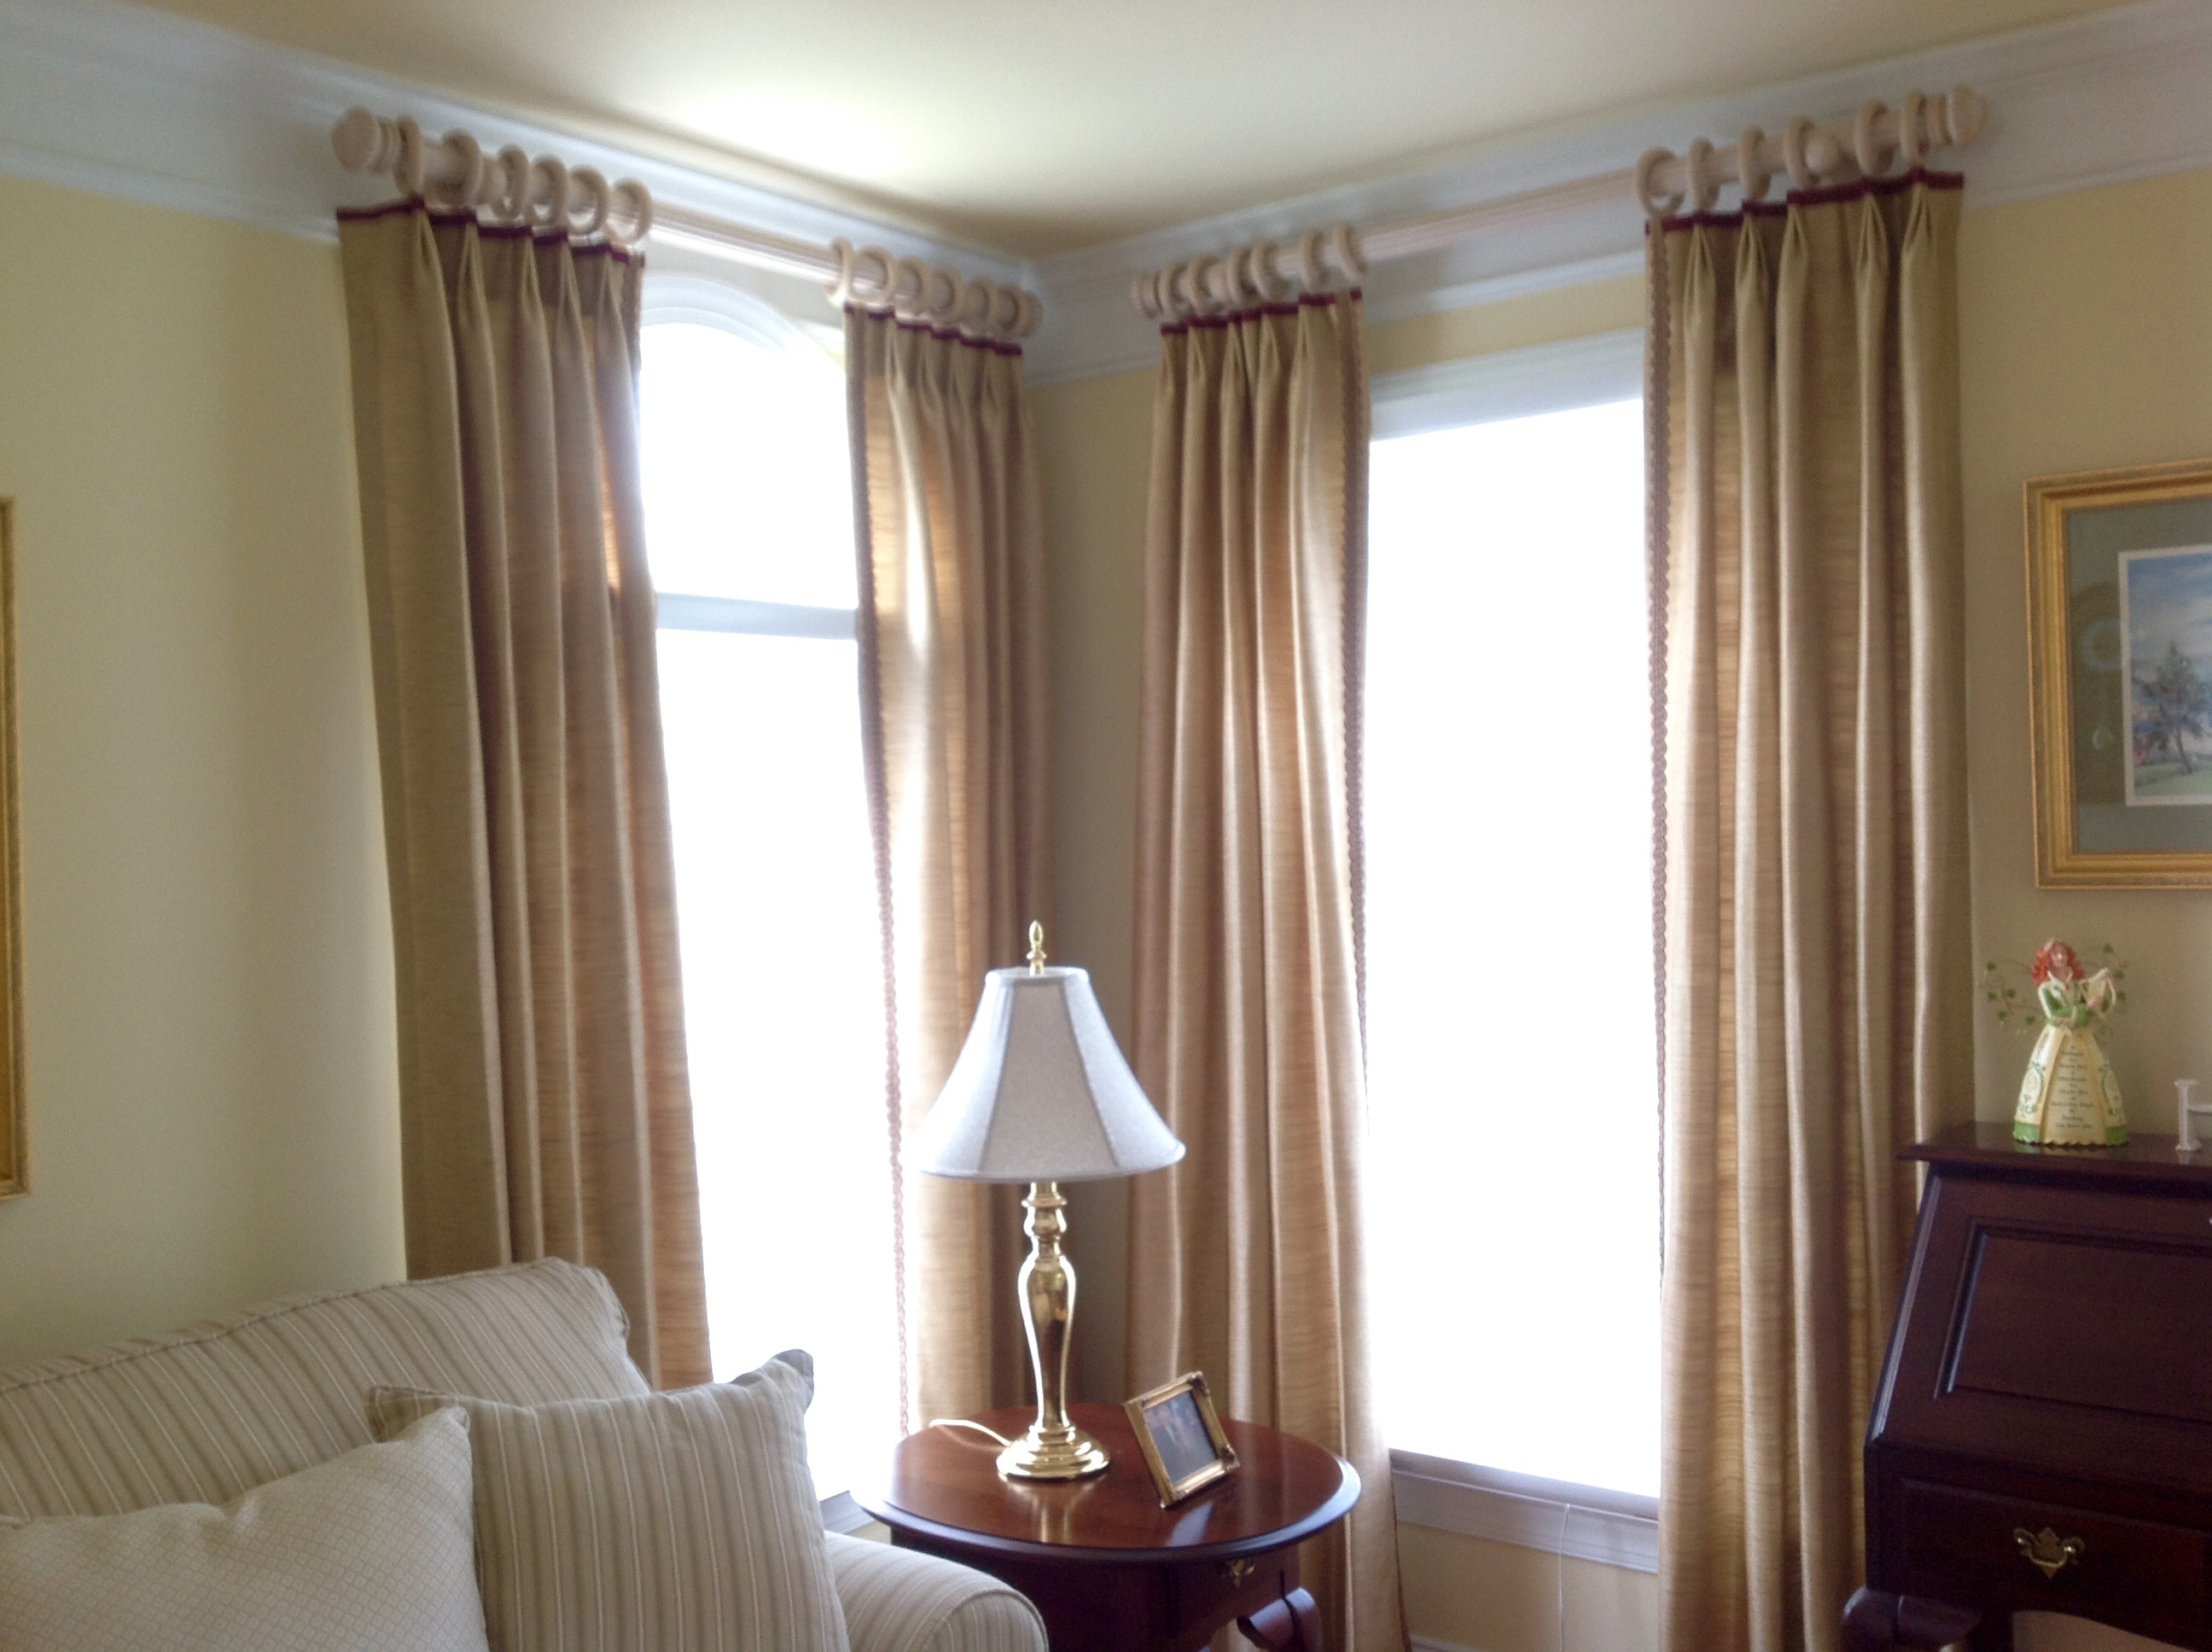 Living Room after removal of swag valances and installation of draperies installed above arches